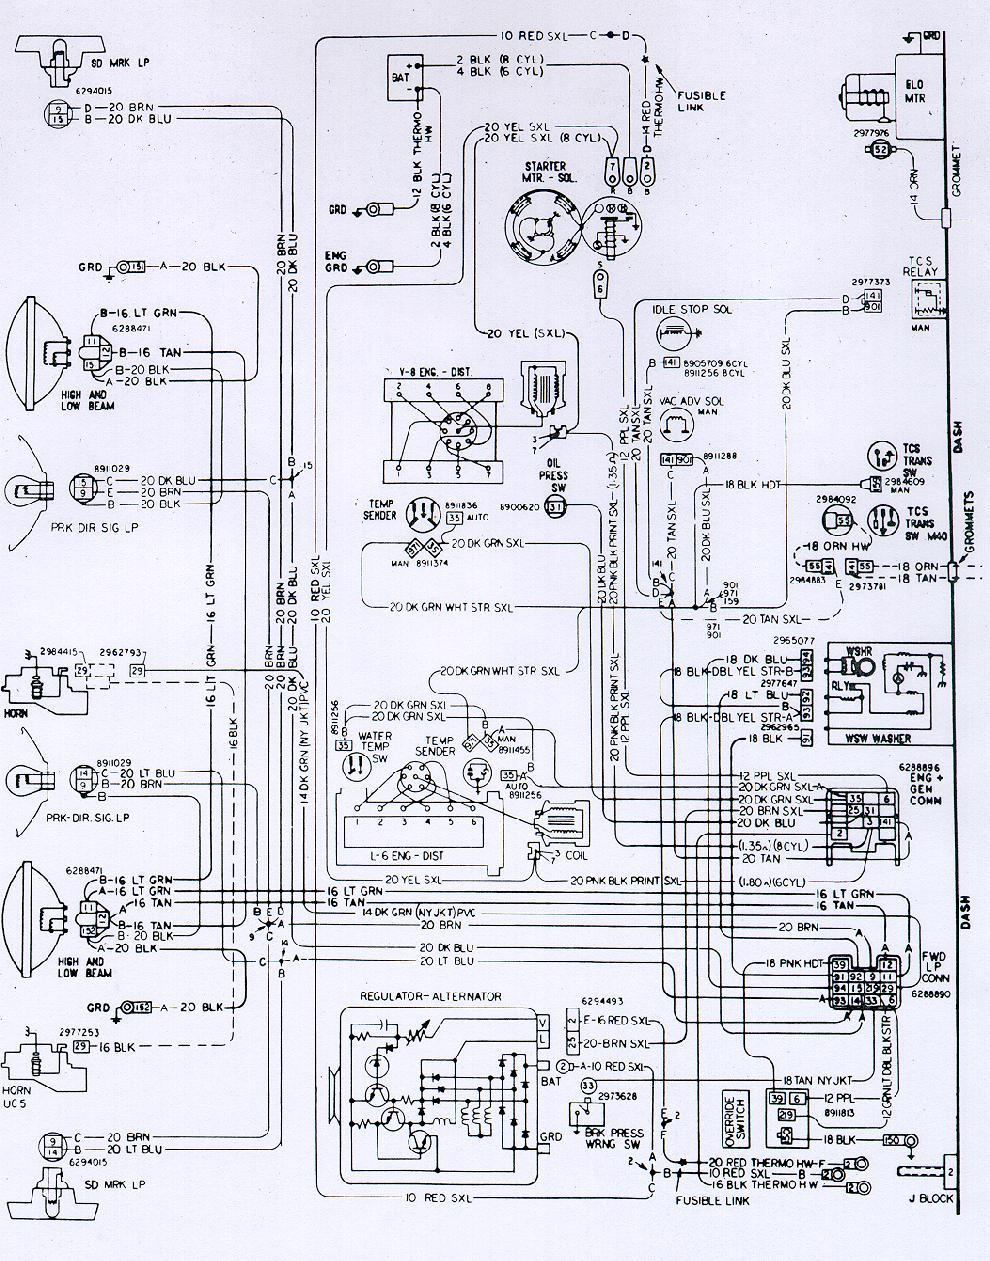 hight resolution of camaro wiring electrical information 2002 camaro exhaust 2002 camaro dash fuse diagram